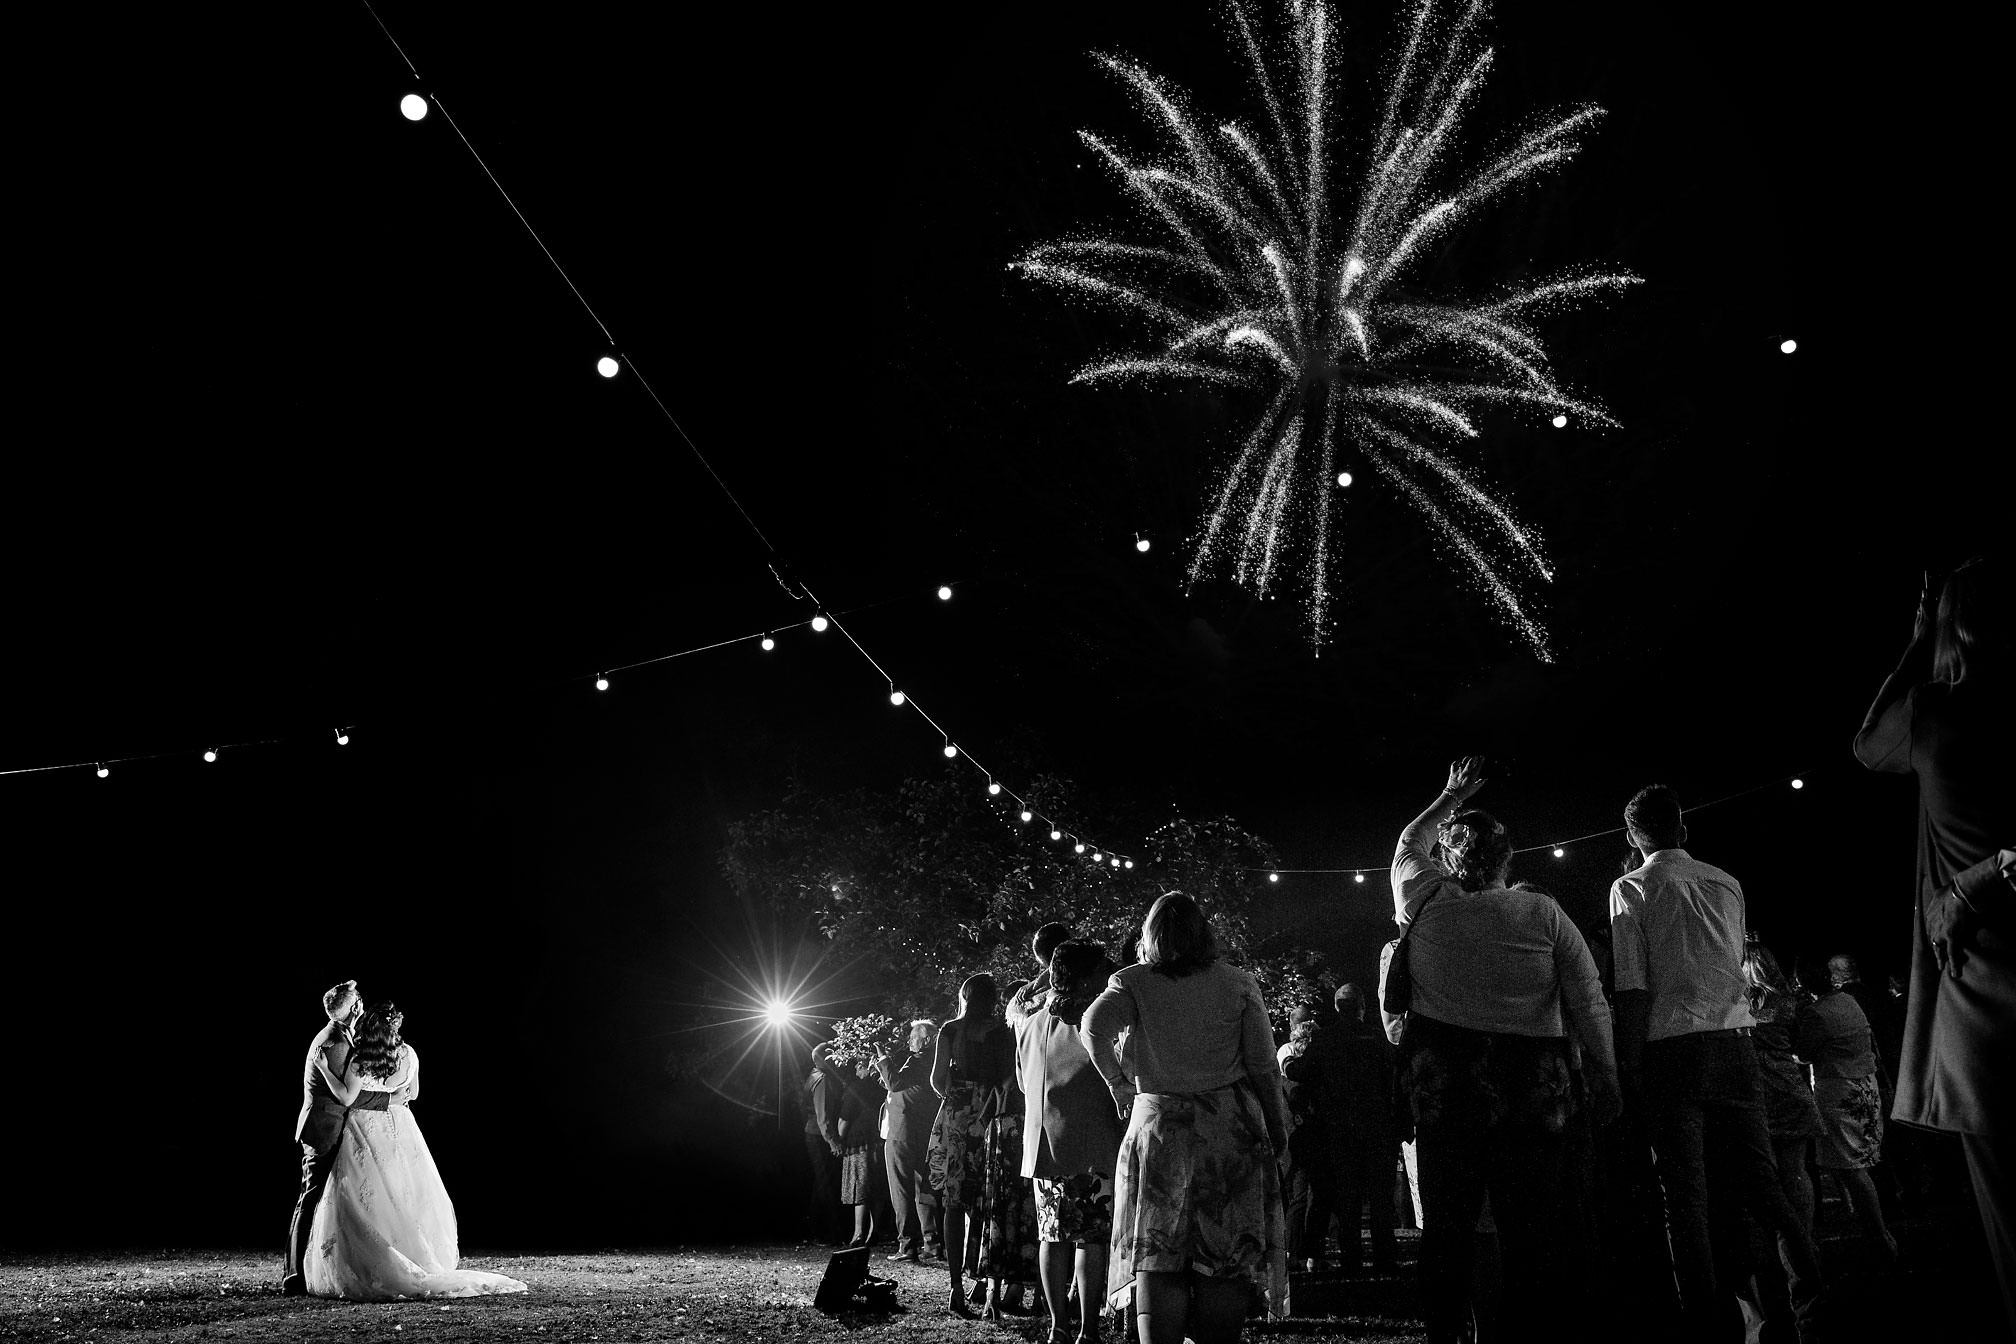 First Dance set to Fireworks